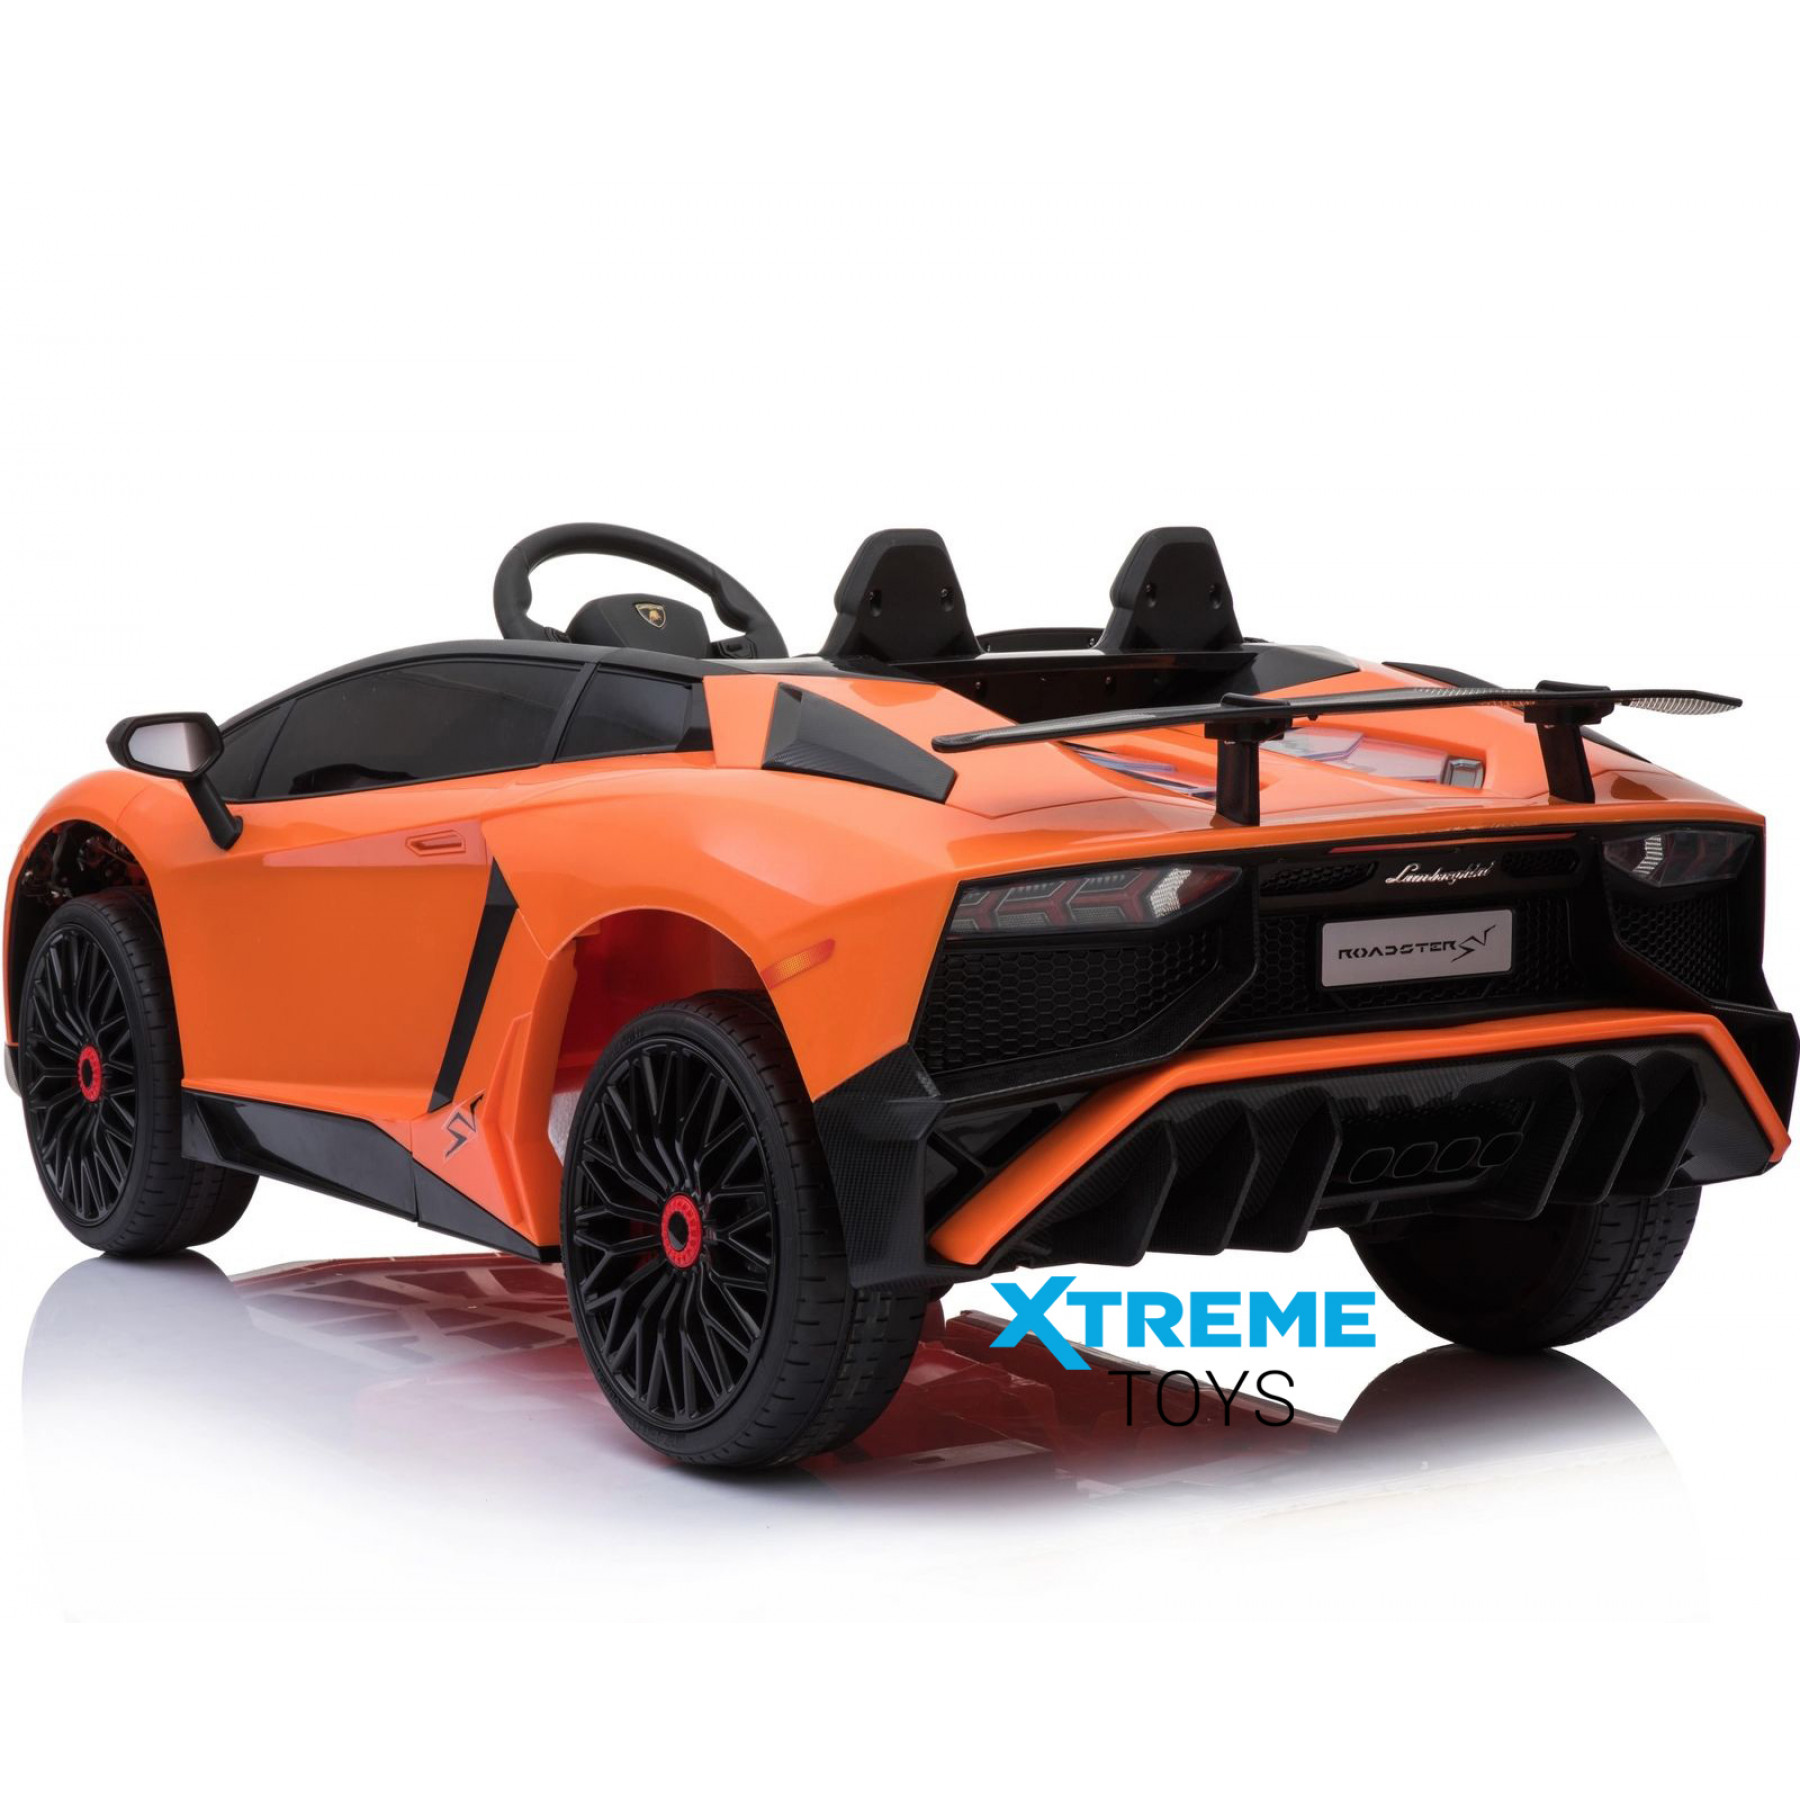 Xtreme 12v Official Licensed Lamborghini Aventador SV Ride on Car Orange